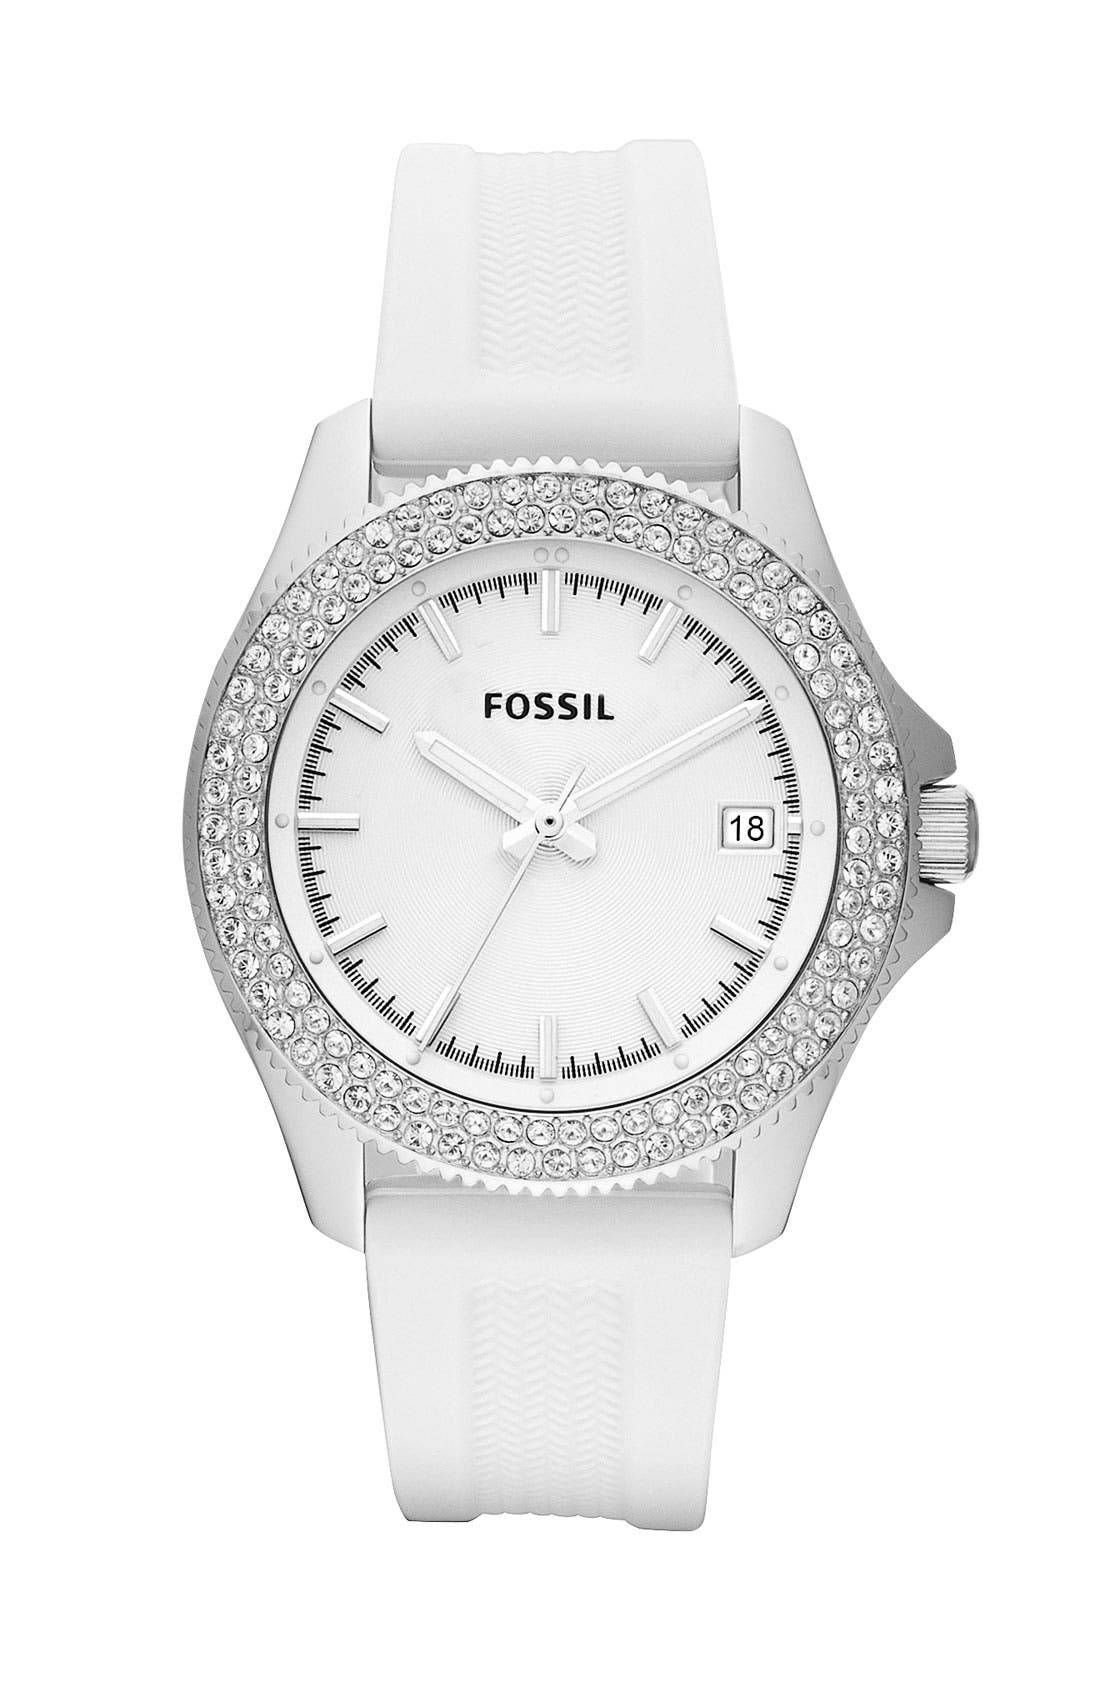 Alternate Image 1 Selected - Fossil 'Retro Traveler' Crystal Bezel Watch, 36mm